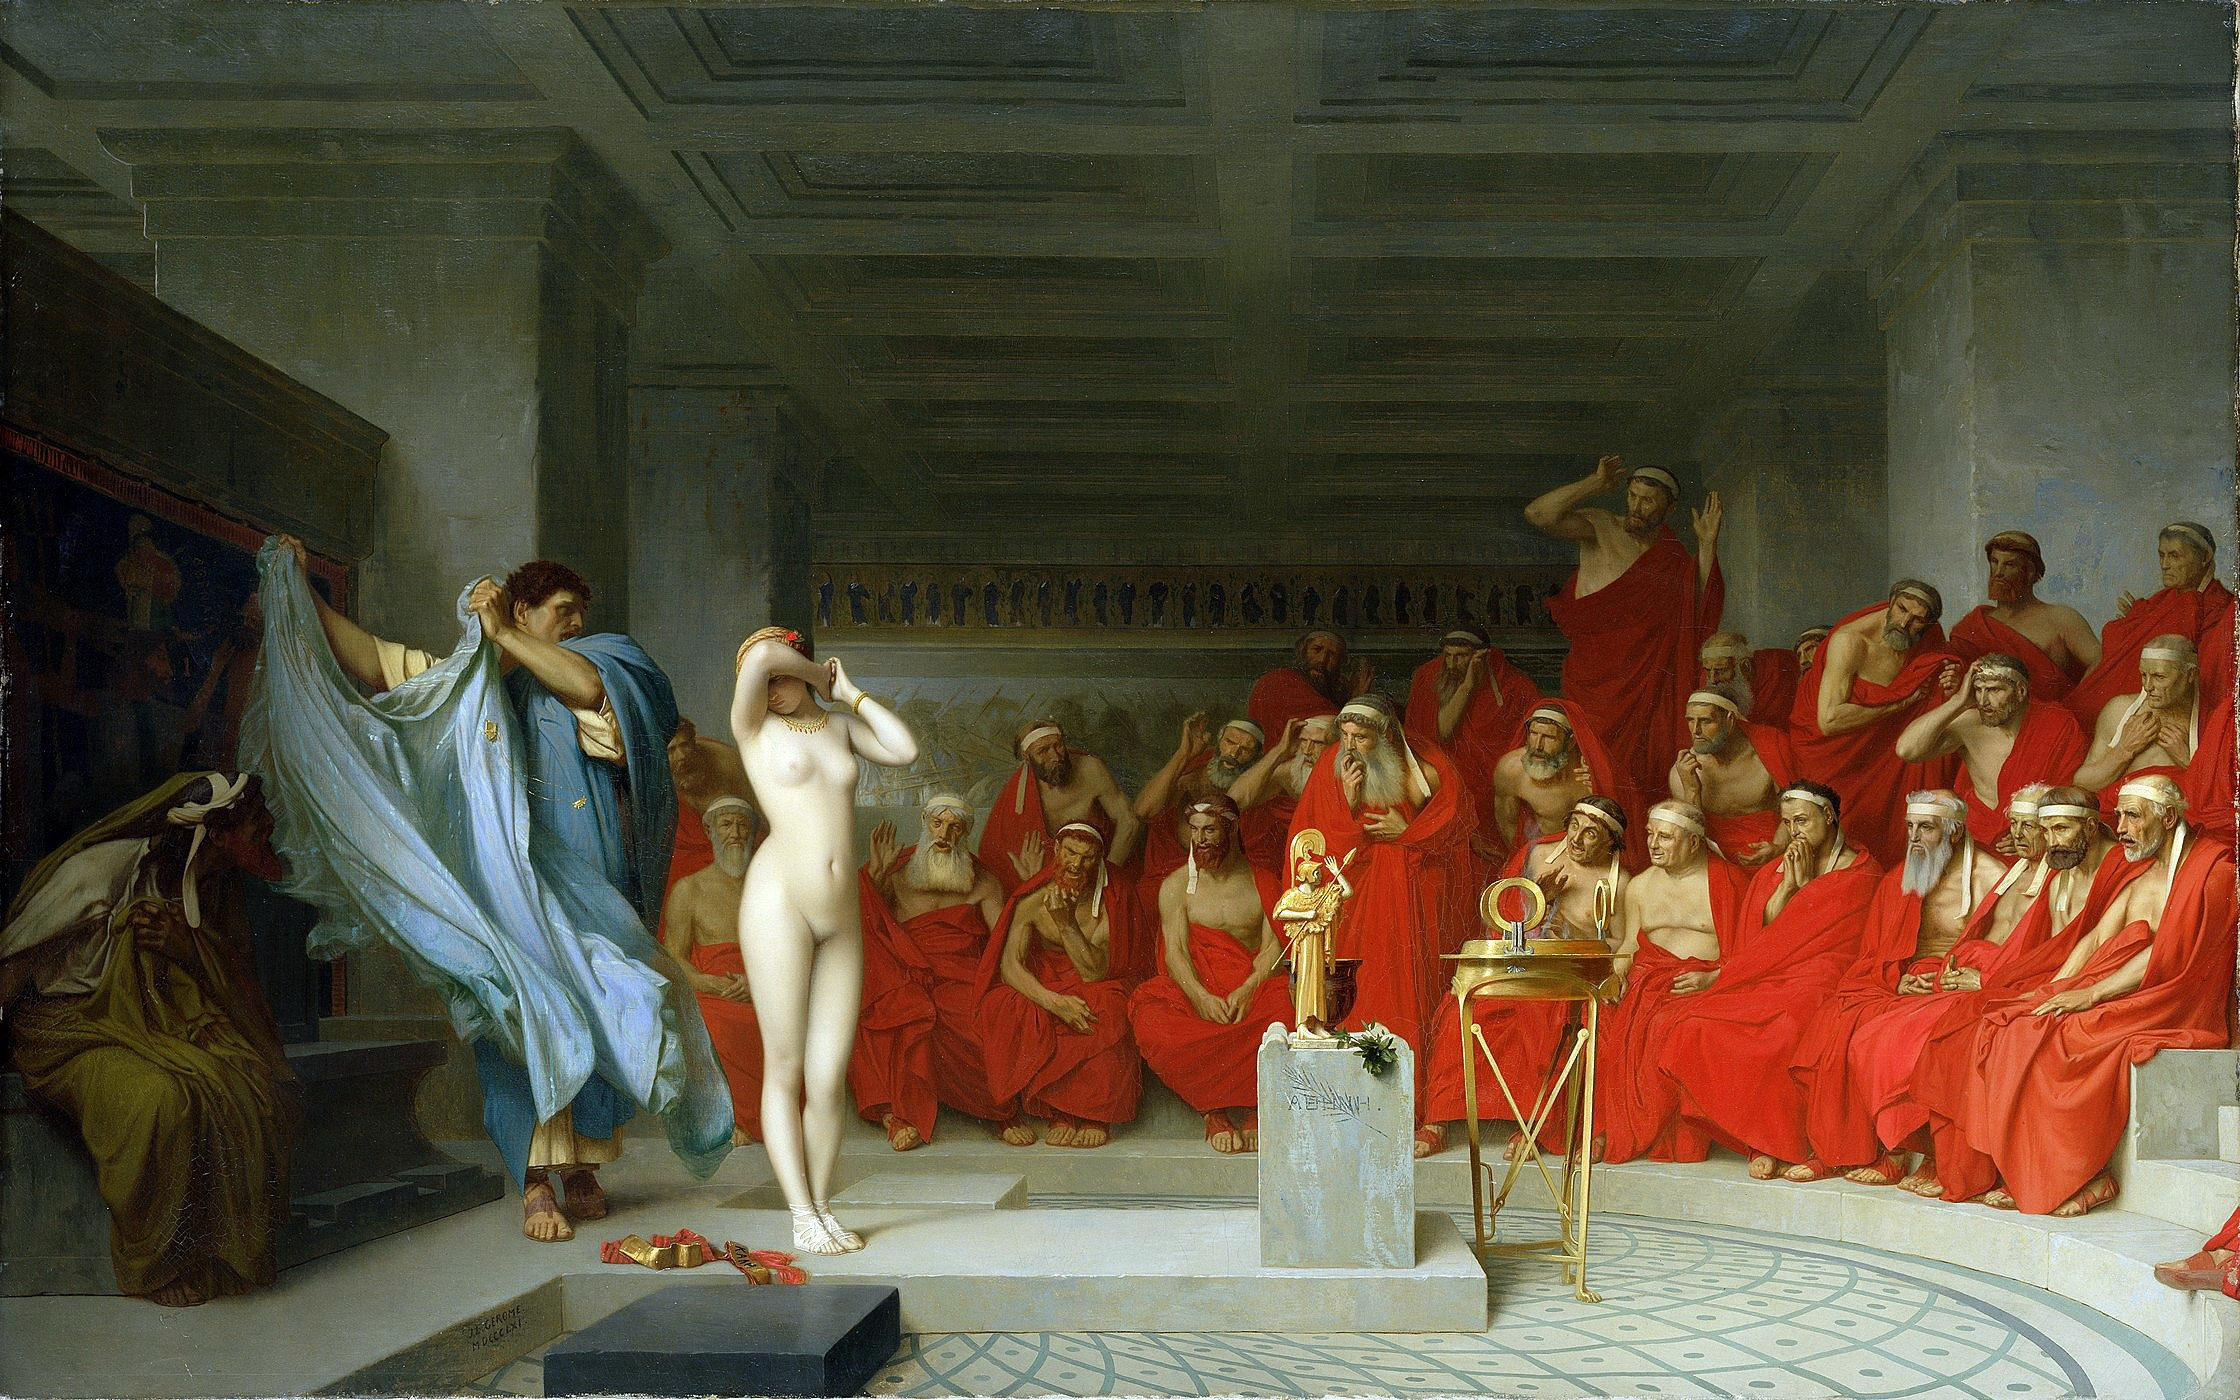 http://upload.wikimedia.org/wikipedia/commons/d/d8/Jean-L%C3%A9on_G%C3%A9r%C3%B4me,_Phryne_revealed_before_the_Areopagus_(1861)_-_01.jpg